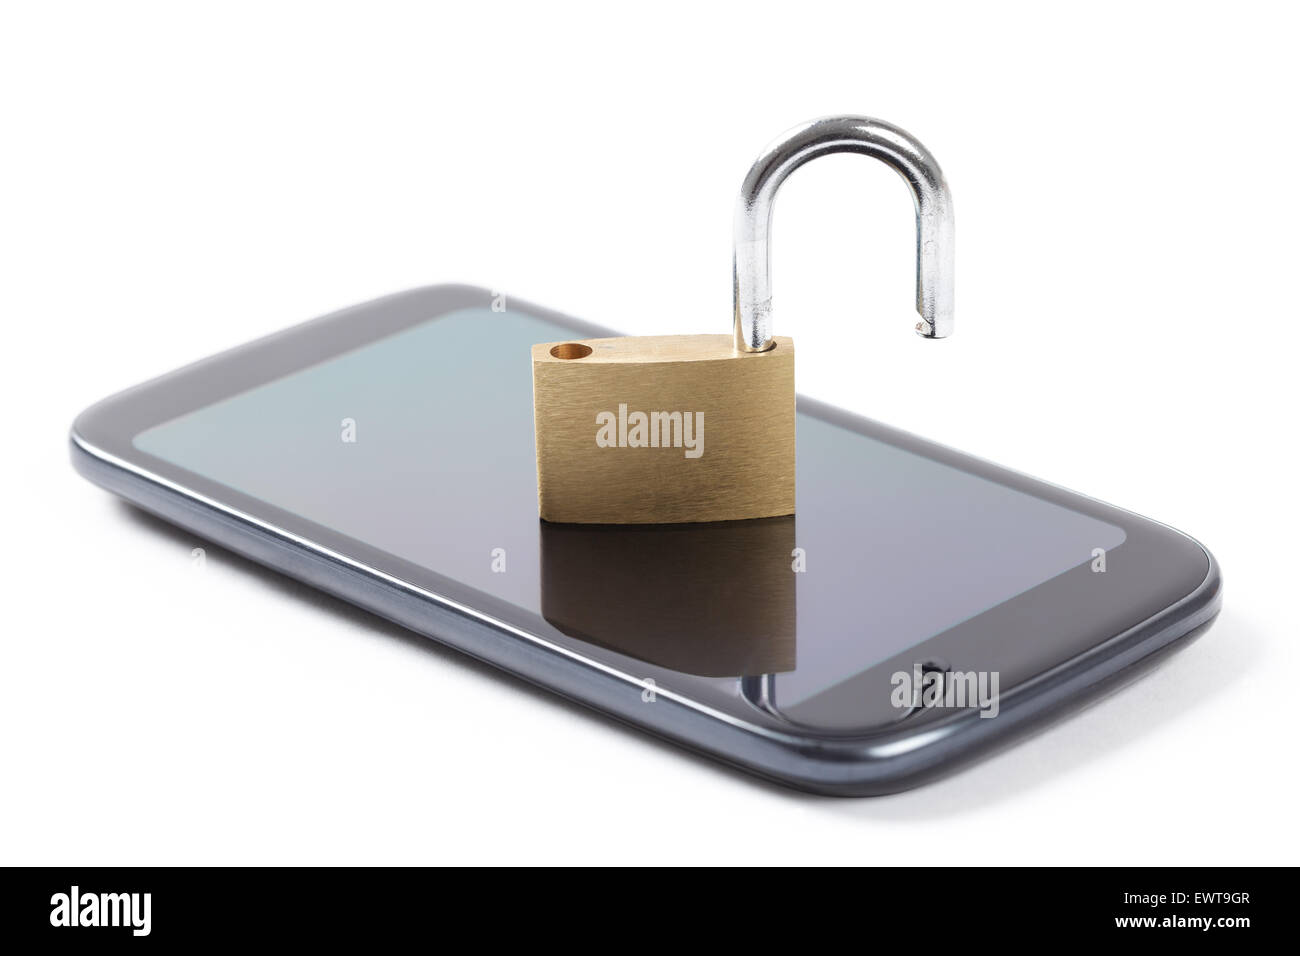 Phone with put unlocked padlock on it isolated on white background - Stock Image